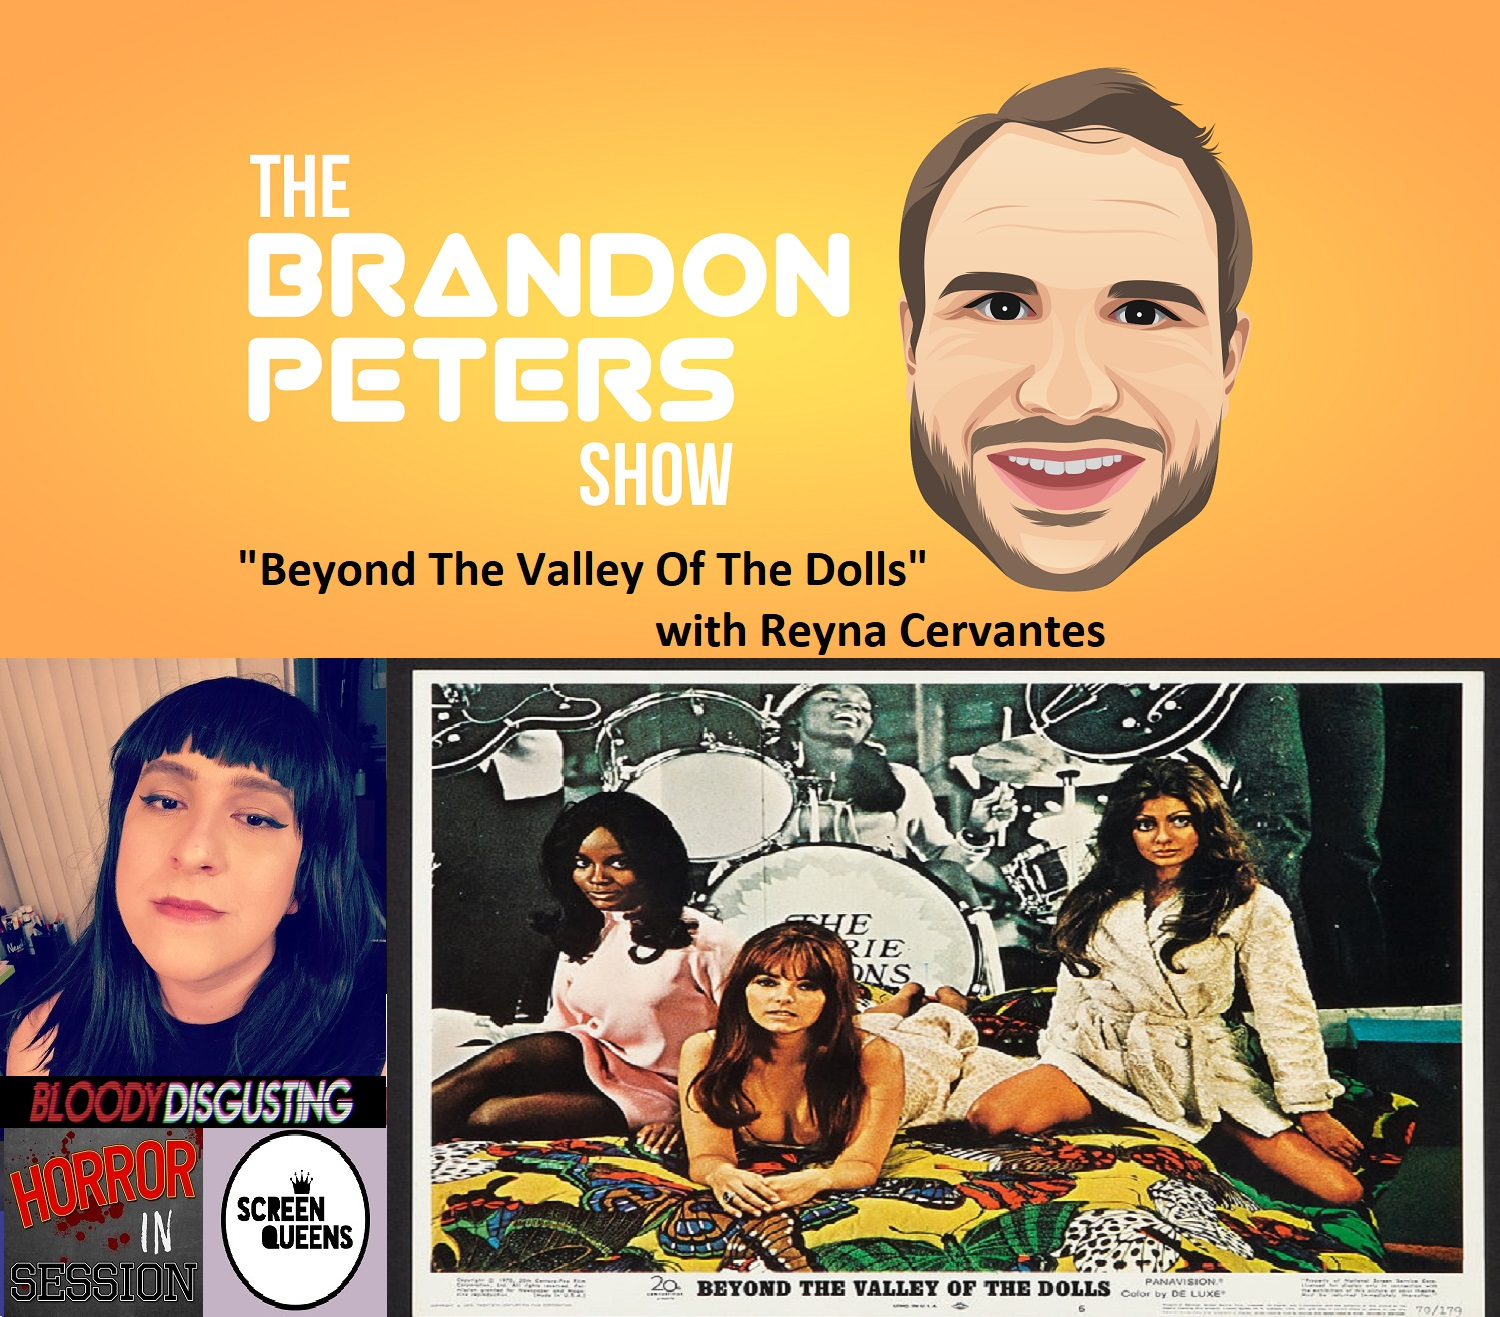 Beyond The Valley Of The Dolls (1970) with Reyna Cervantes